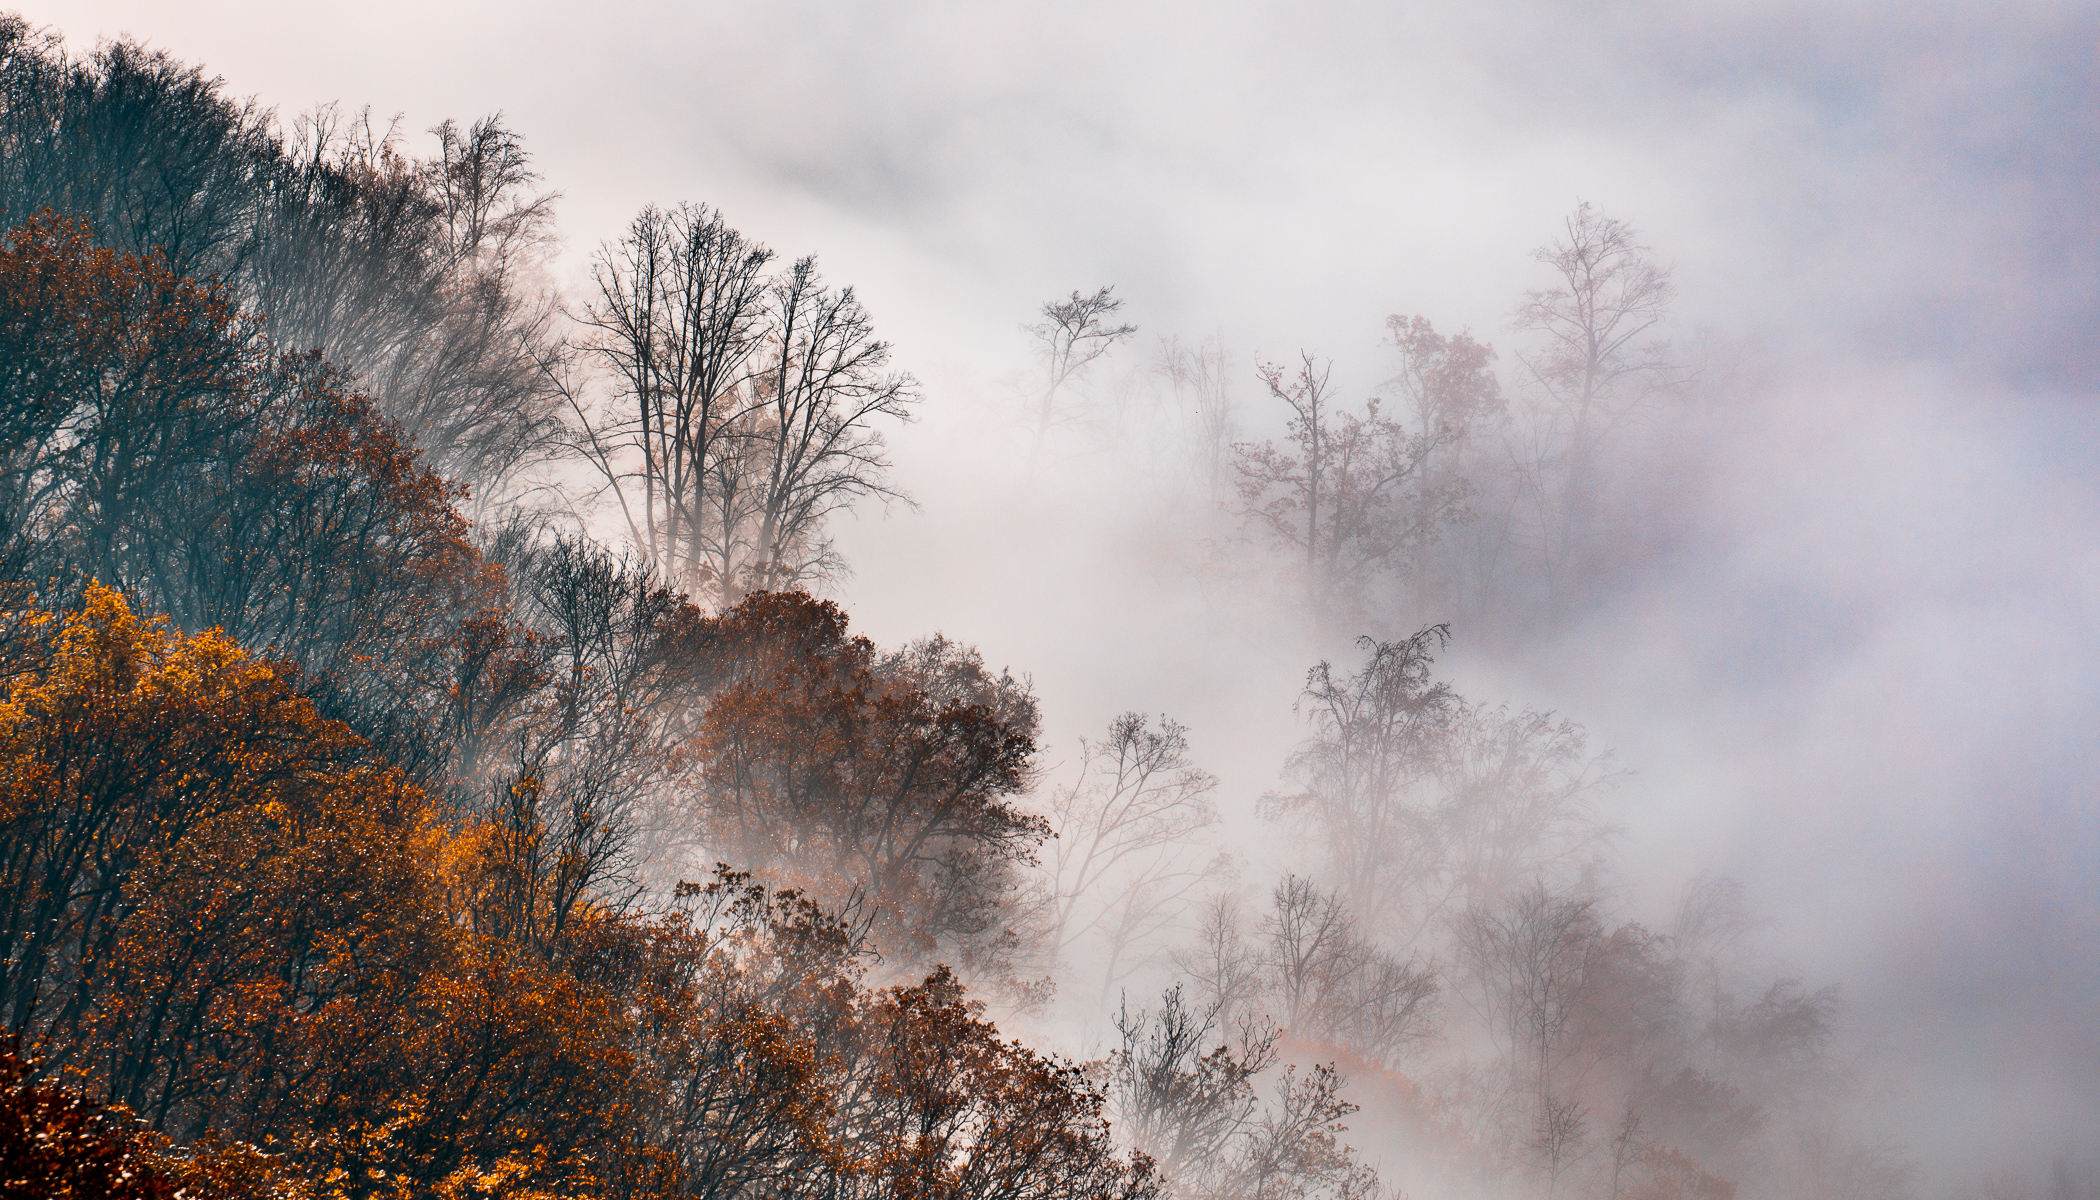 How to Photograph Foggy Landscapes: Focus on the Details